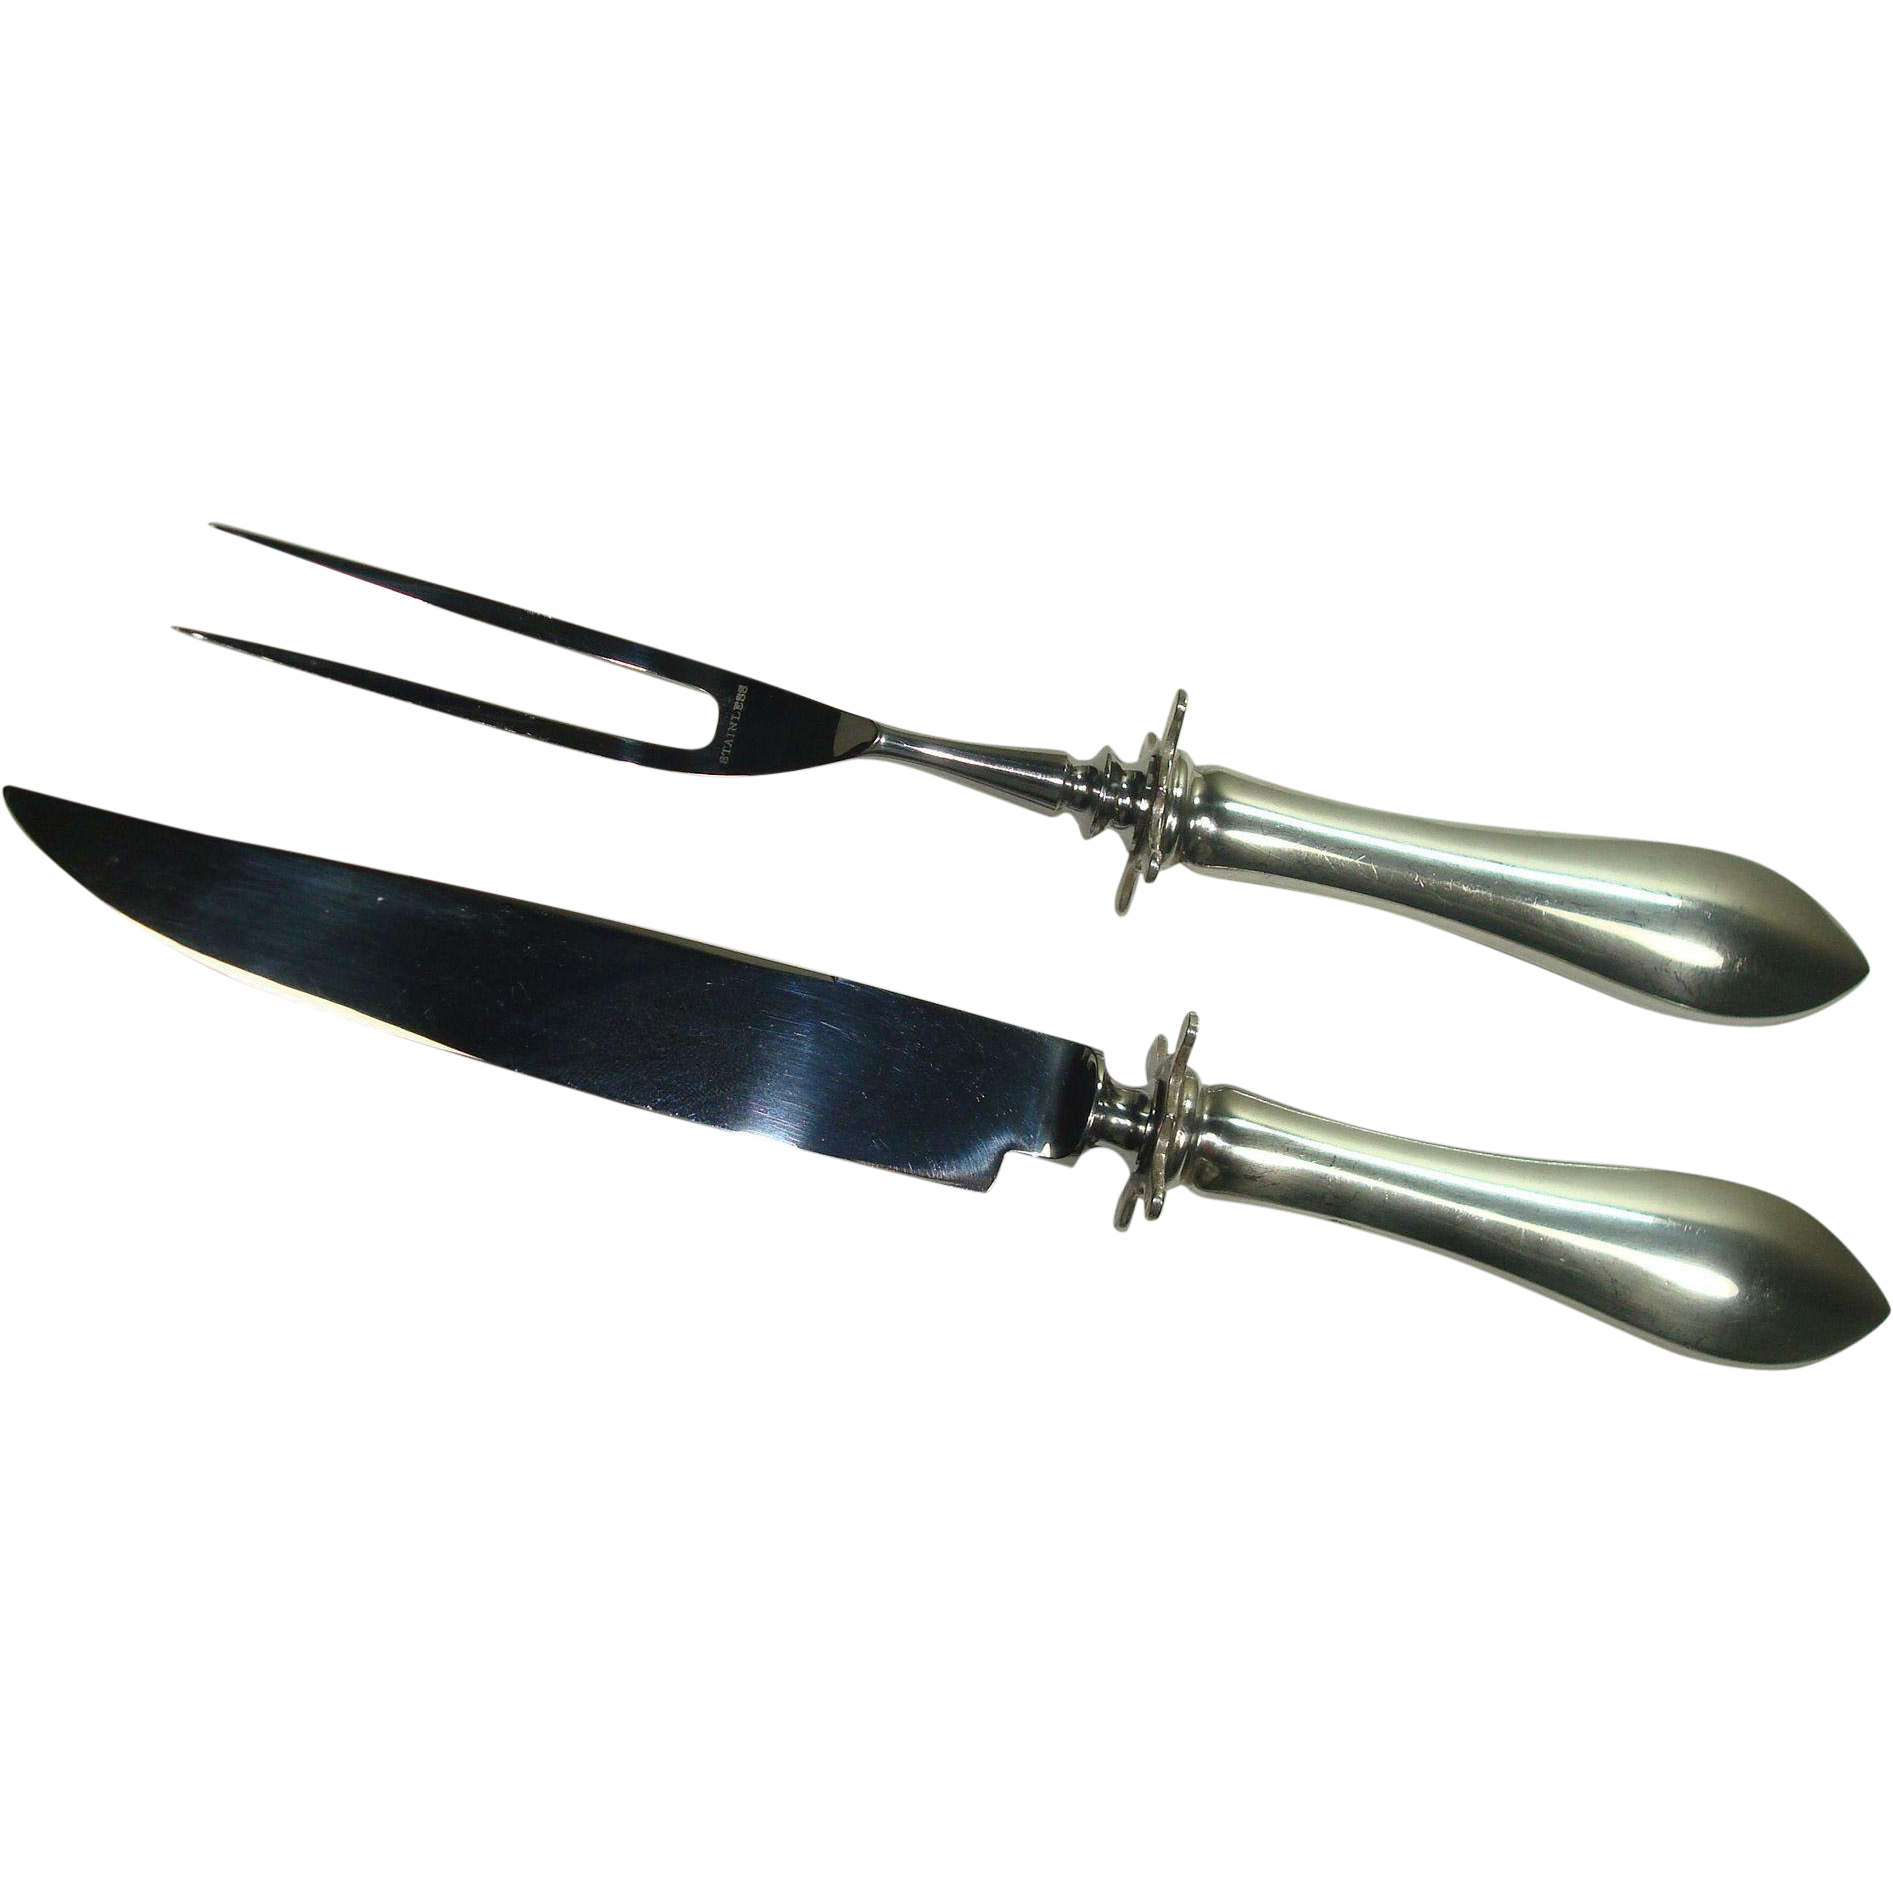 Dominick and Haff Small Steak Carving Set in the 1895 Pointed Antique pattern